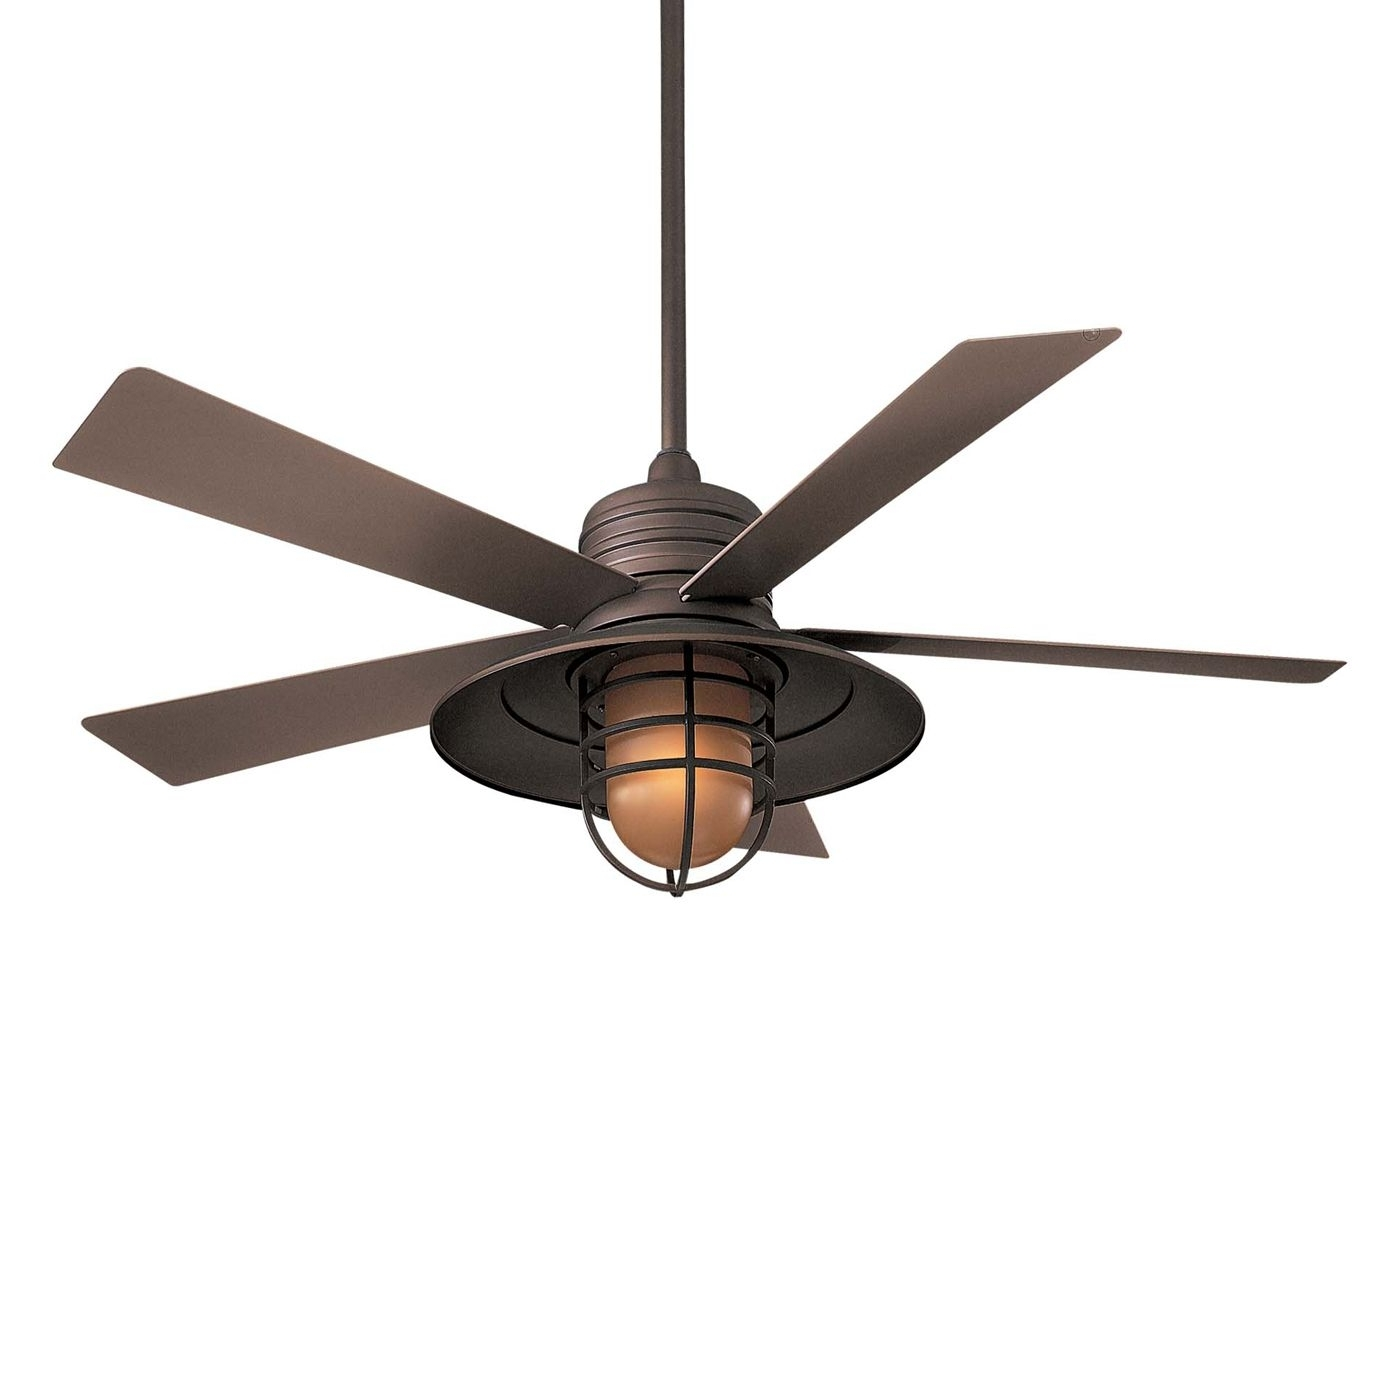 Latest Minka Aire F582 54 In Rainman™ Indoor/outdoor Ceiling Fan At Atg With Minka Outdoor Ceiling Fans With Lights (View 12 of 20)